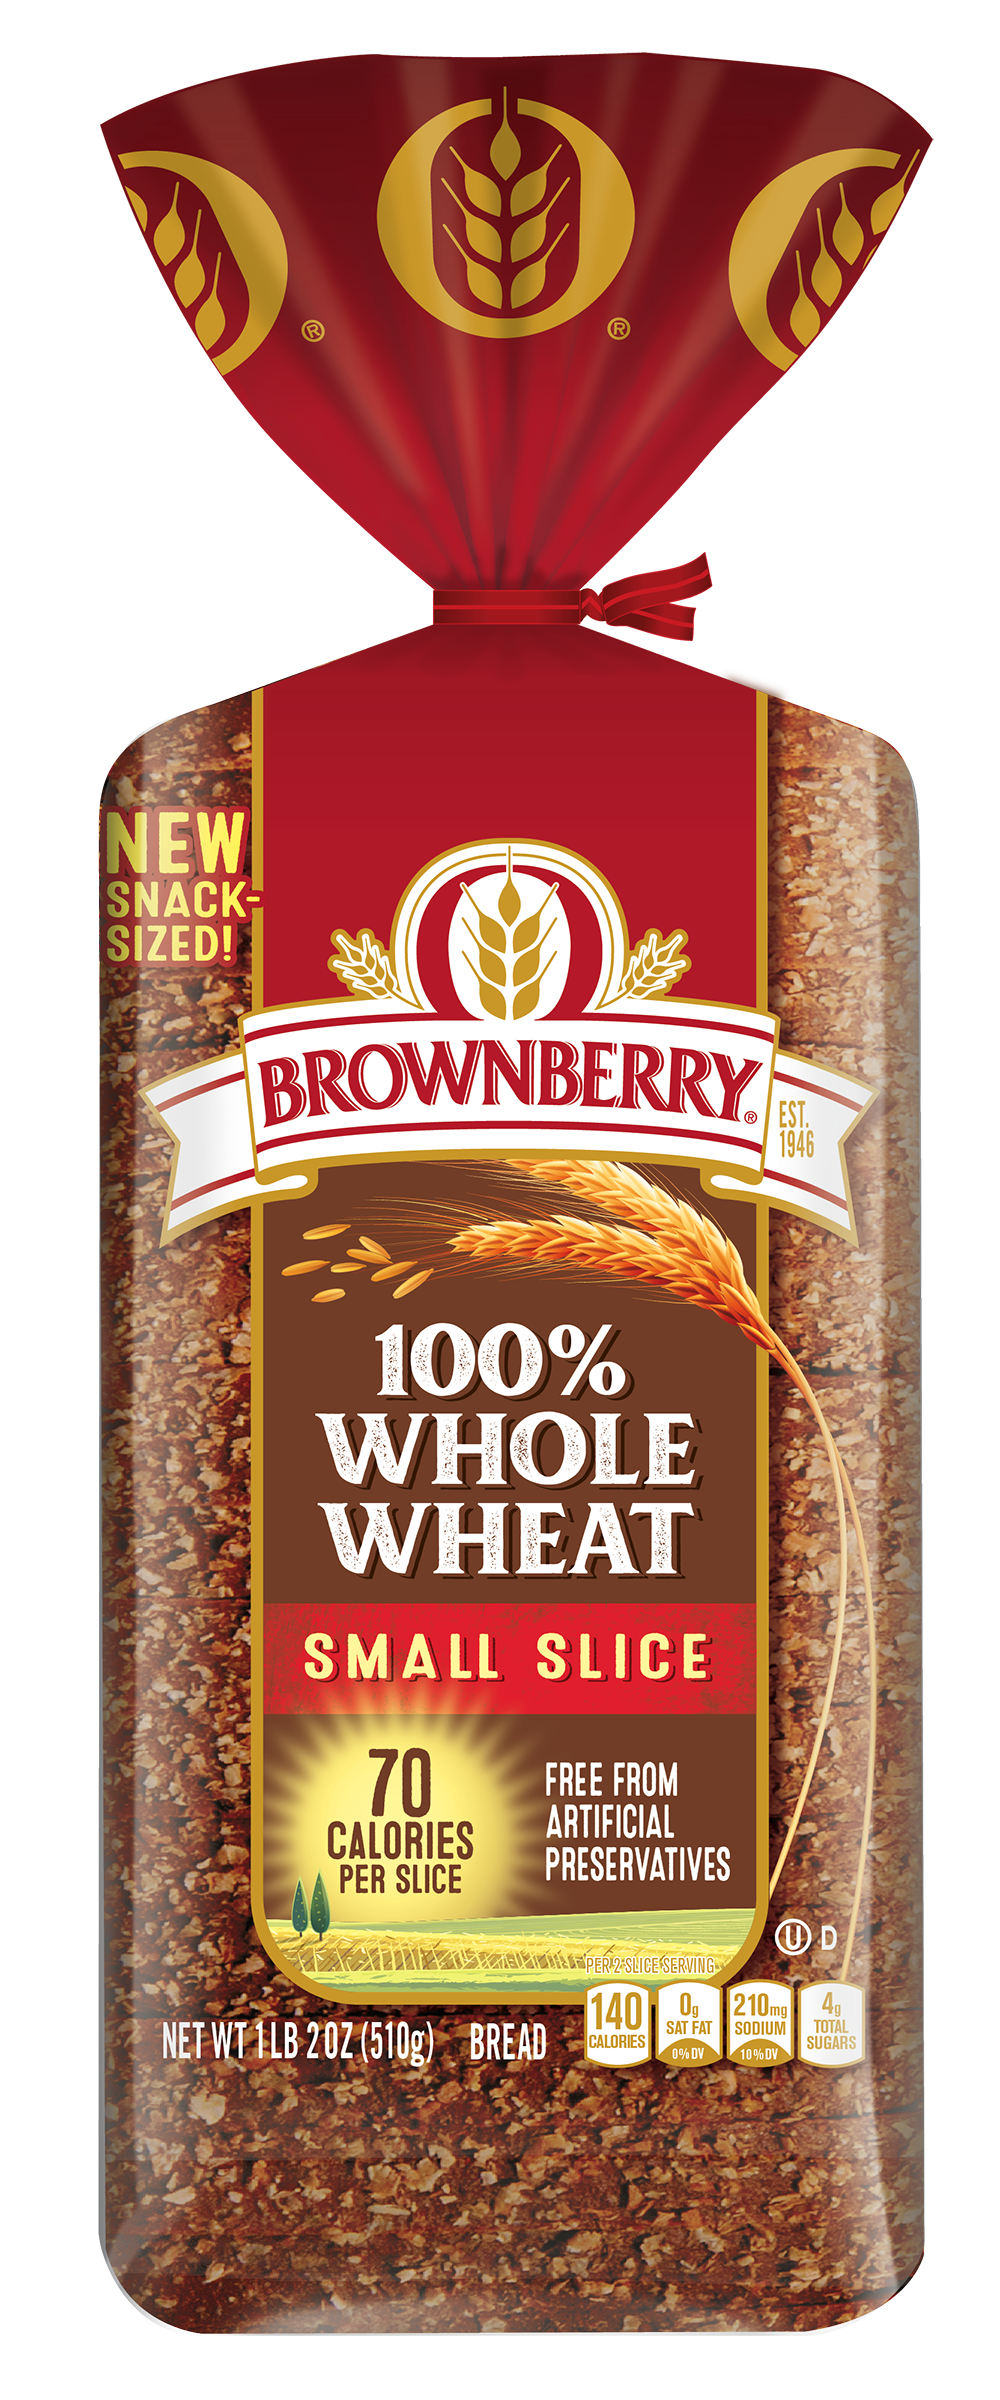 Brownberry Small Slice 100% Whole Wheat 18oz Packaing